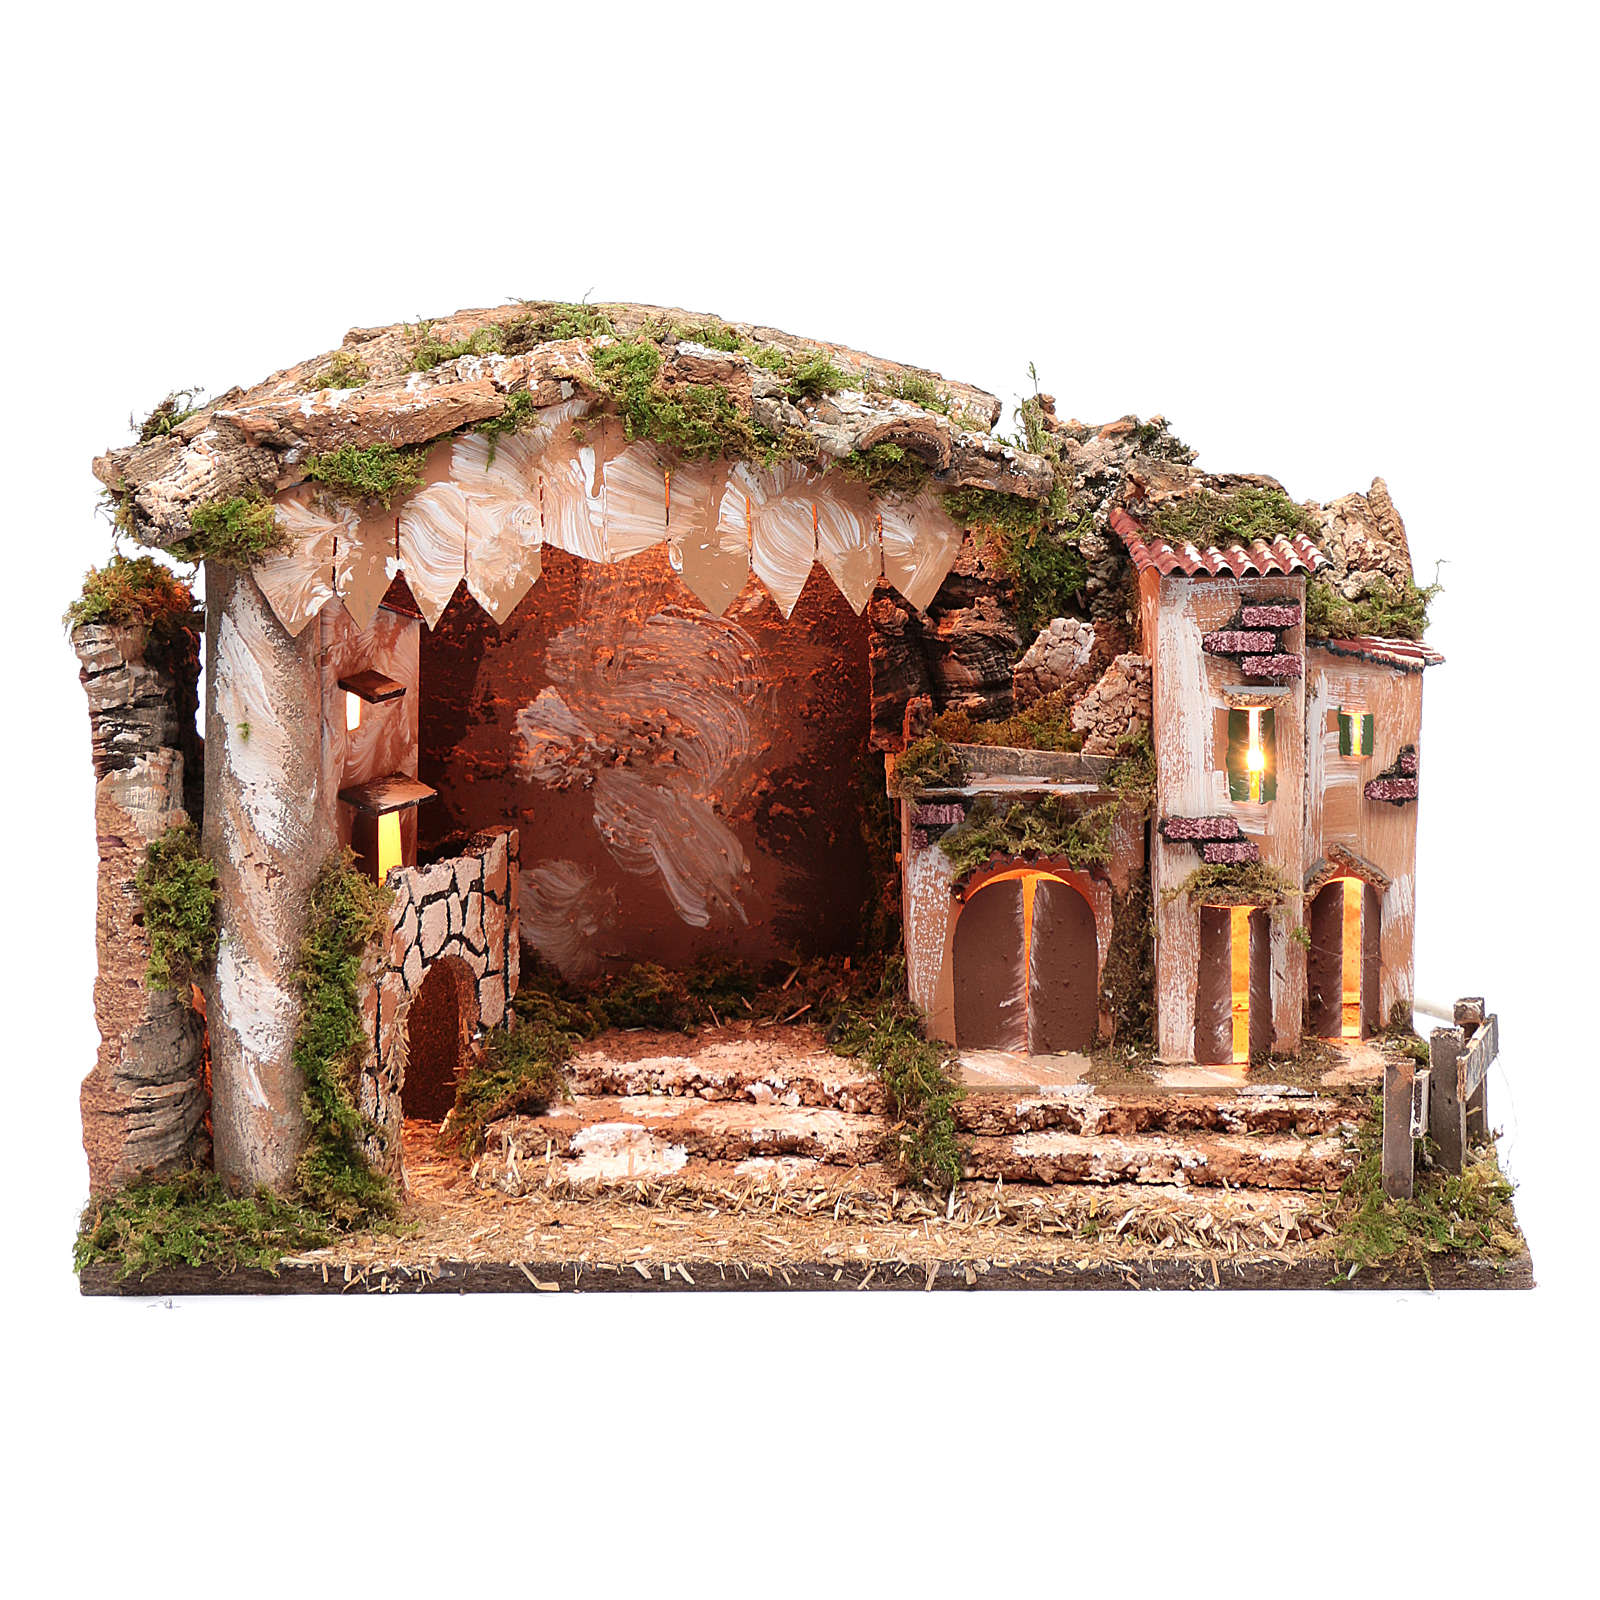 Nativity scene setting 35x50x30 cm with lights, little houses and hut 4